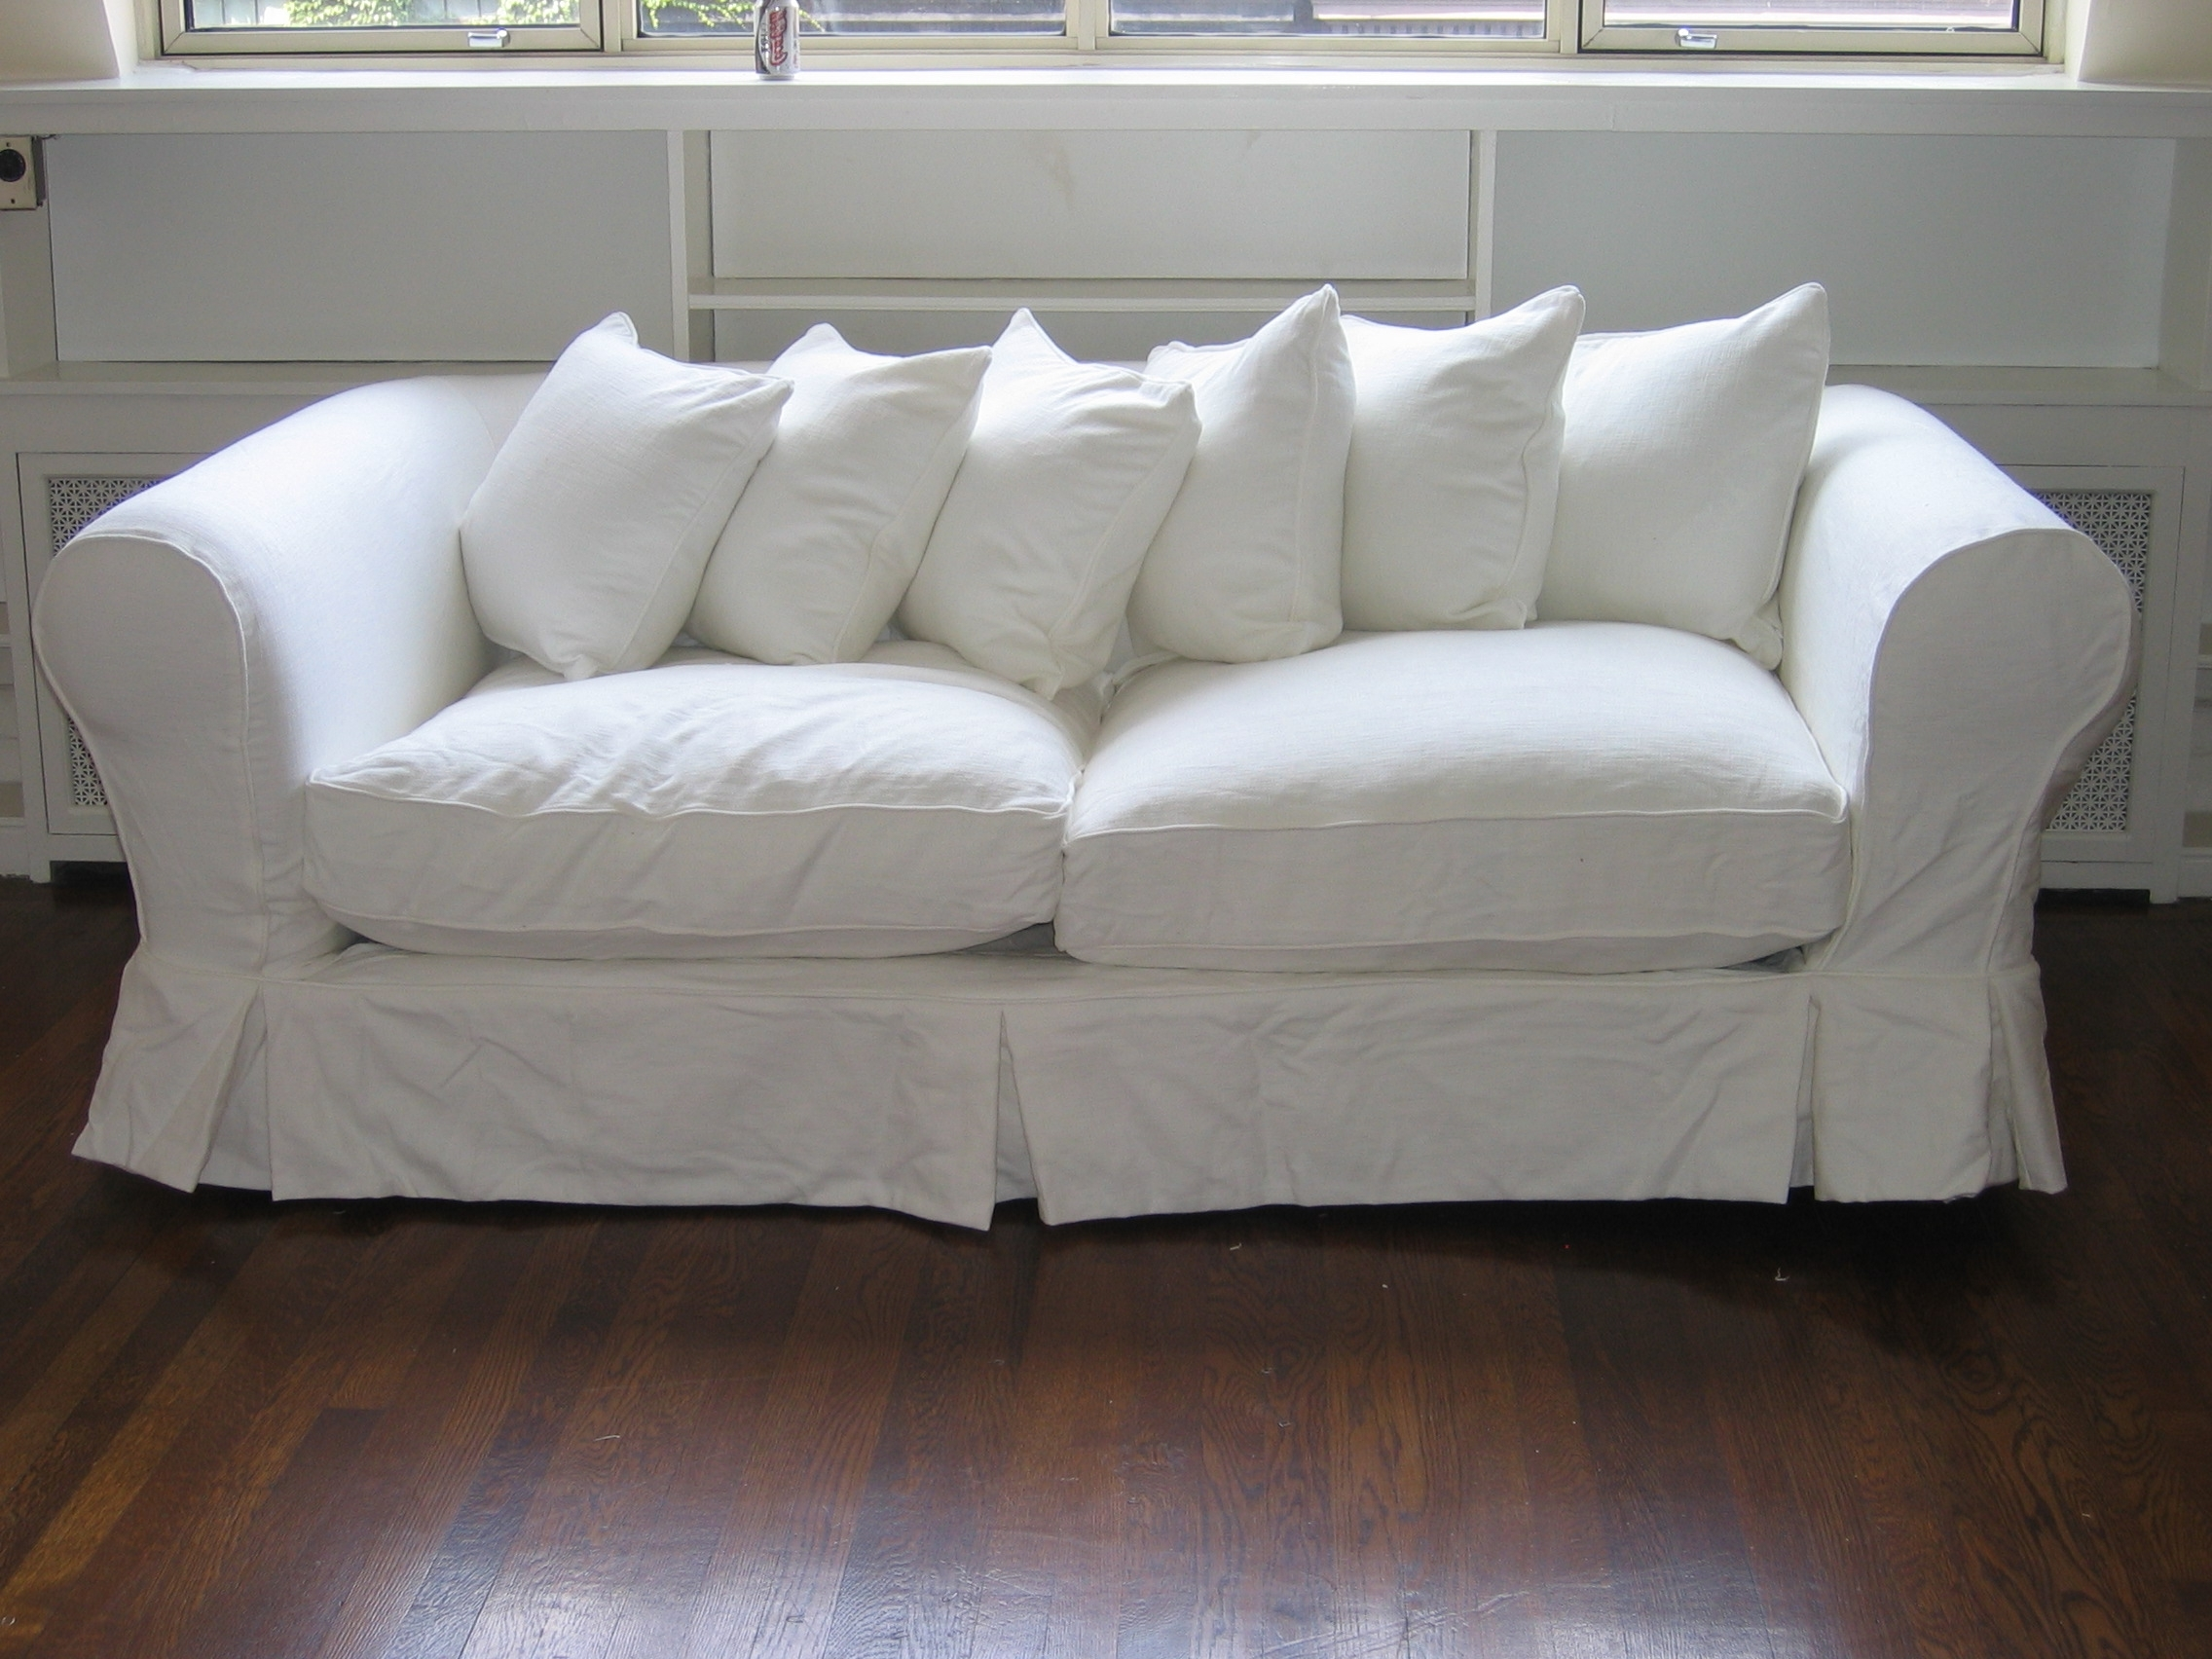 Newest Sofa : Ikea Sofa Reviews Couch For Sale Best Ikea Couch Reddit With Regard To Overstuffed Sofas And Chairs (View 11 of 20)